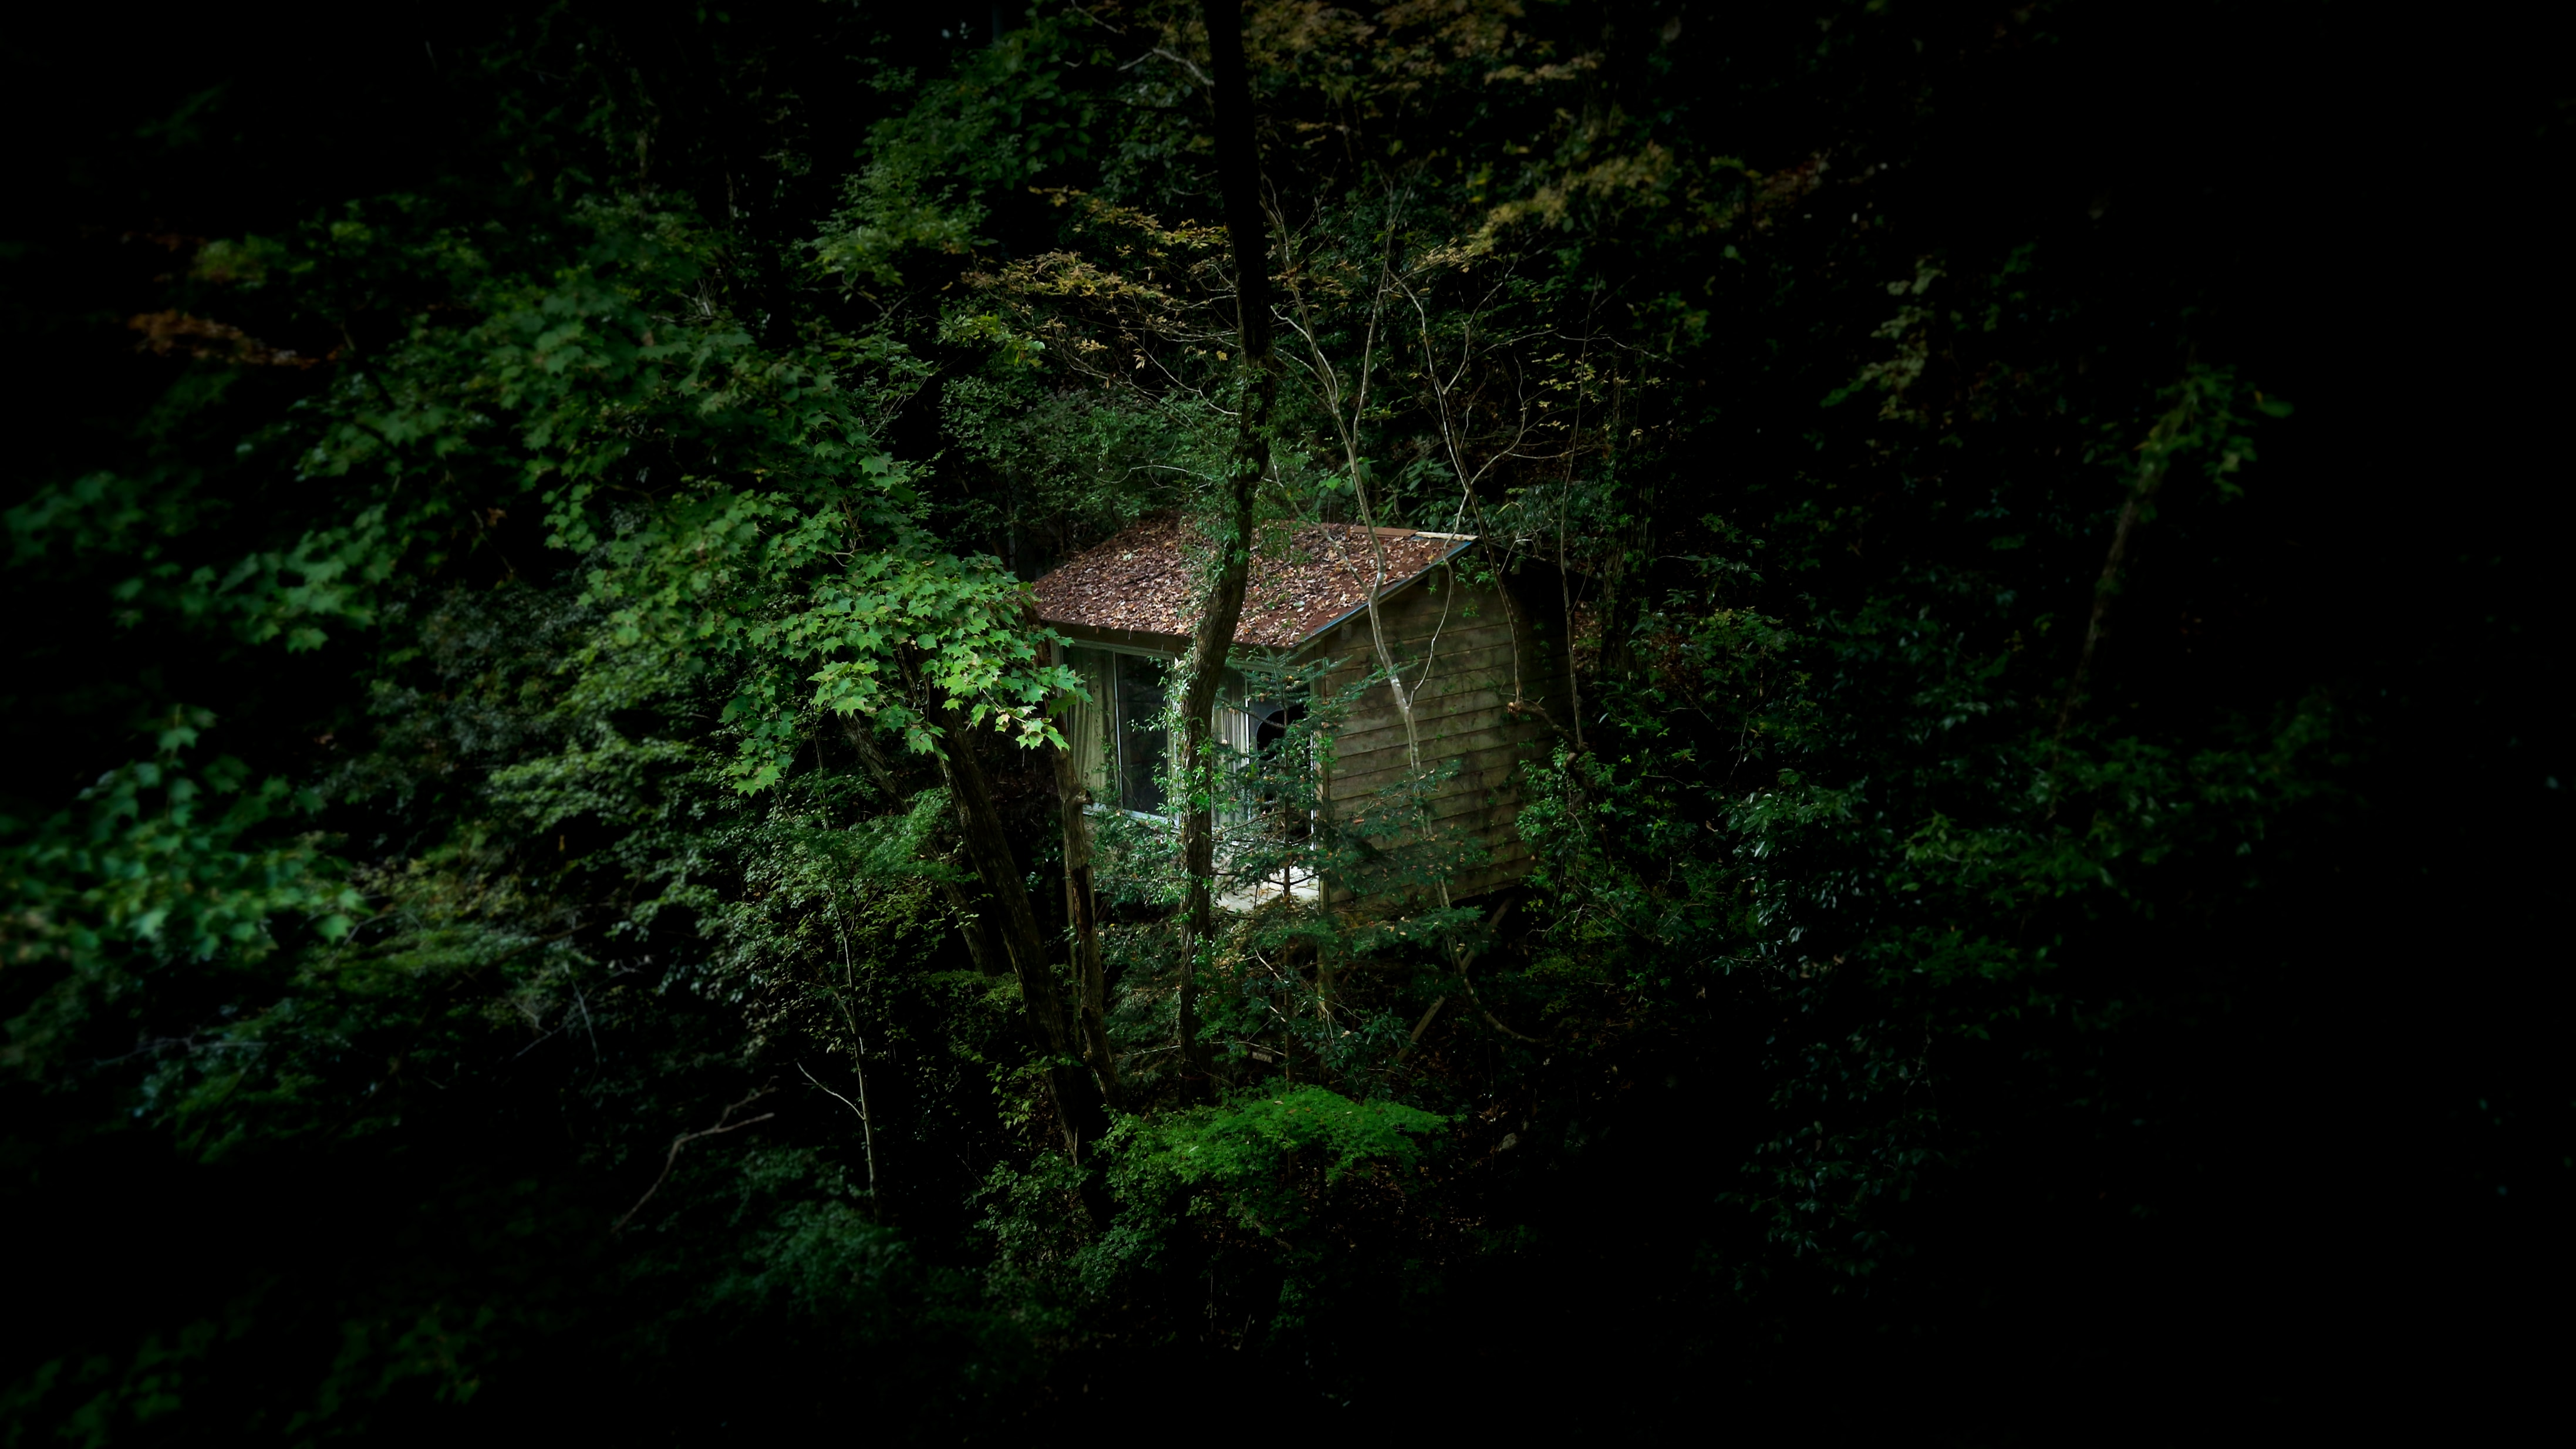 brown wooden house in the middle of forest